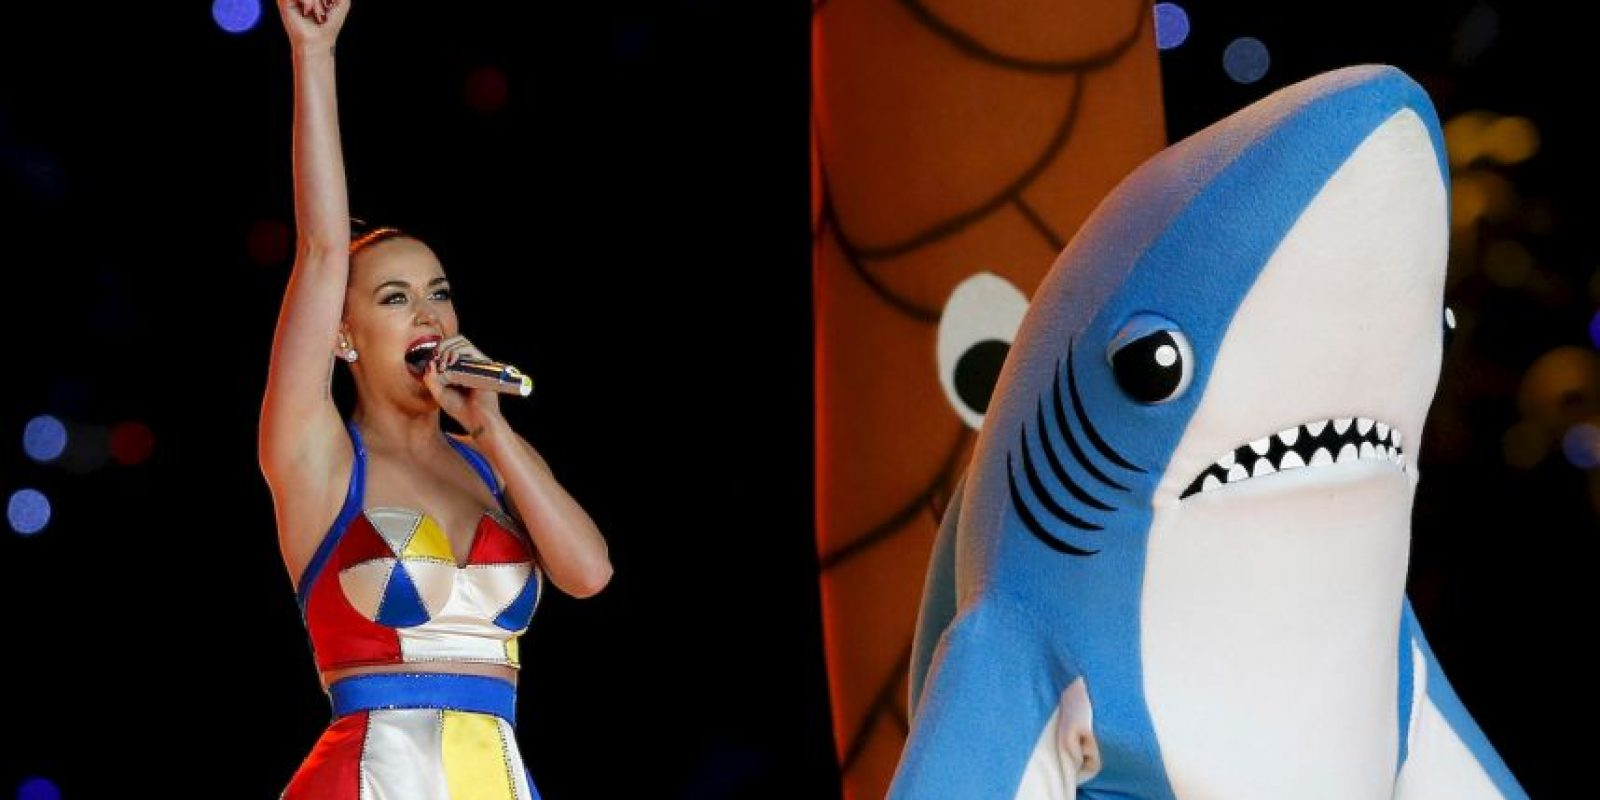 Taylor Swift revivió al tiburón que utilizó Katy Perry en el Super Bowl. Foto: Getty Images